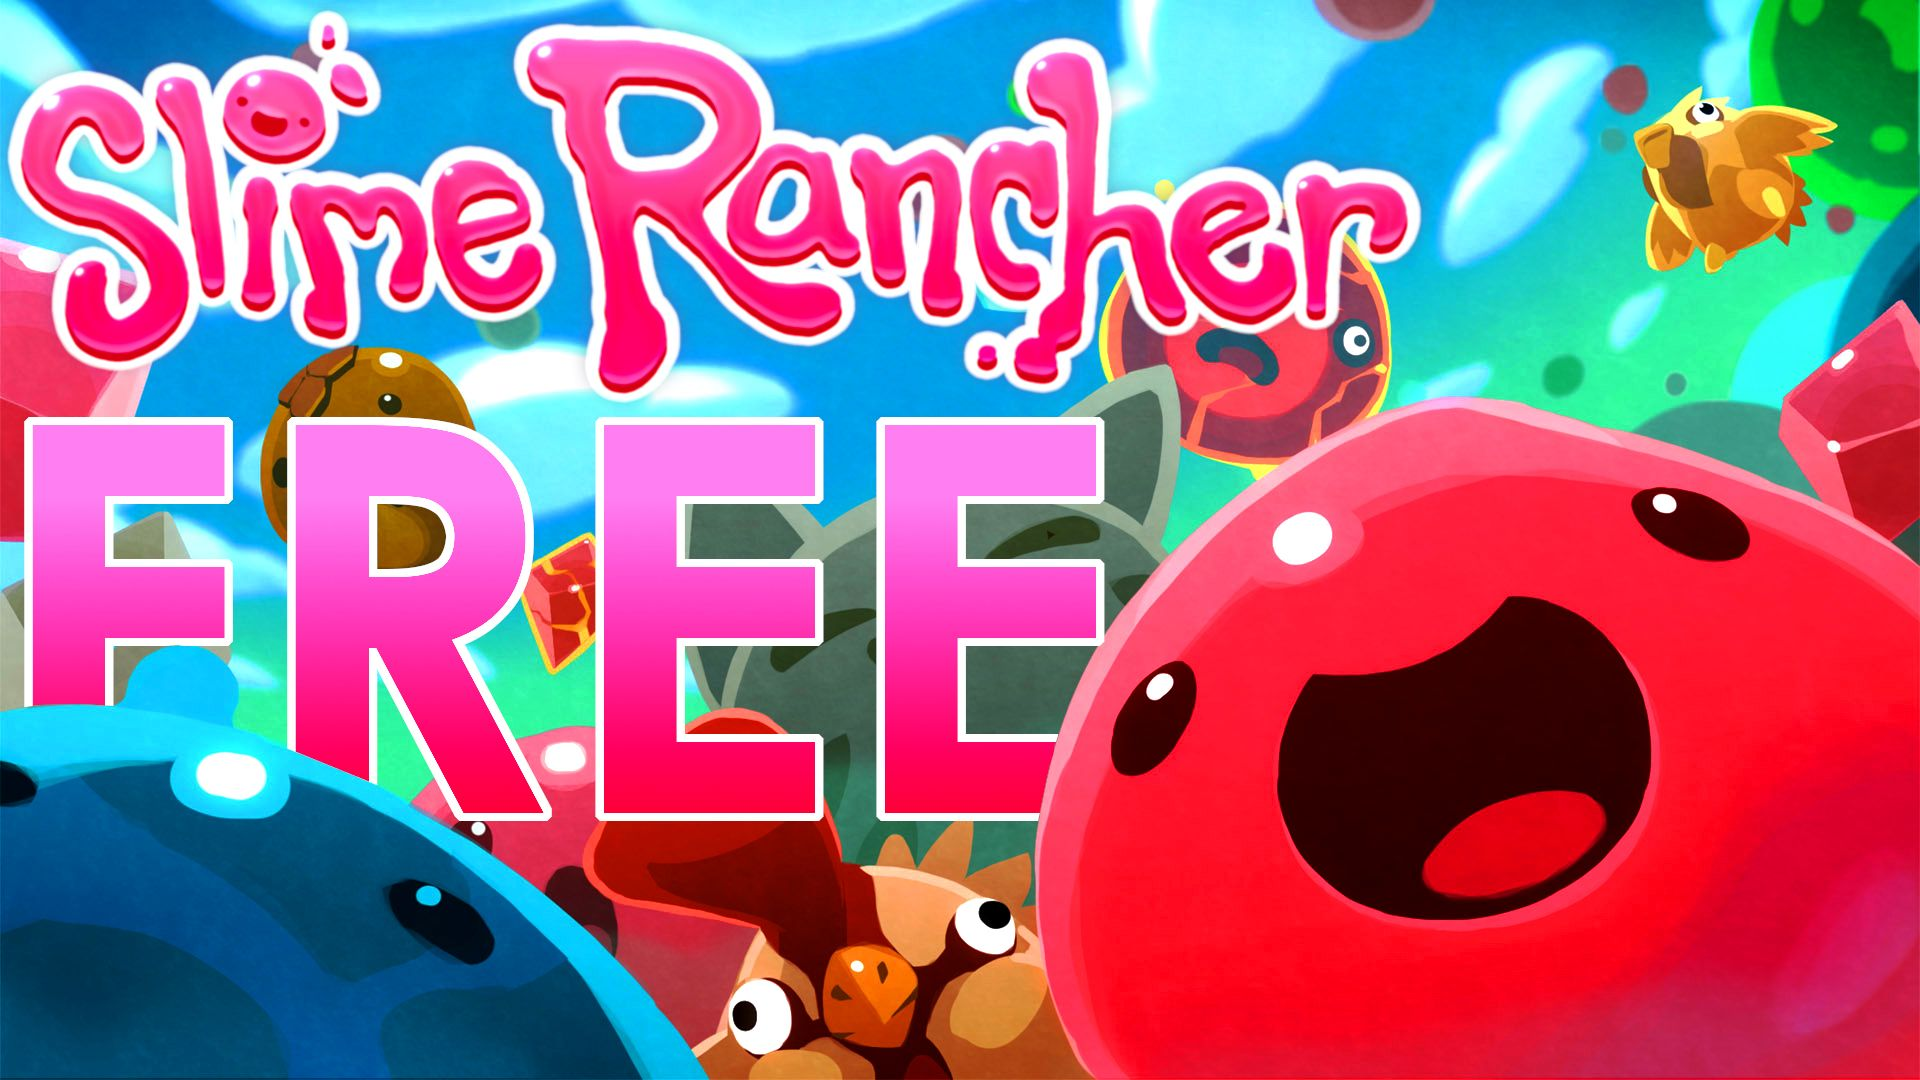 How To Get Slime Rancher For Free On Steam